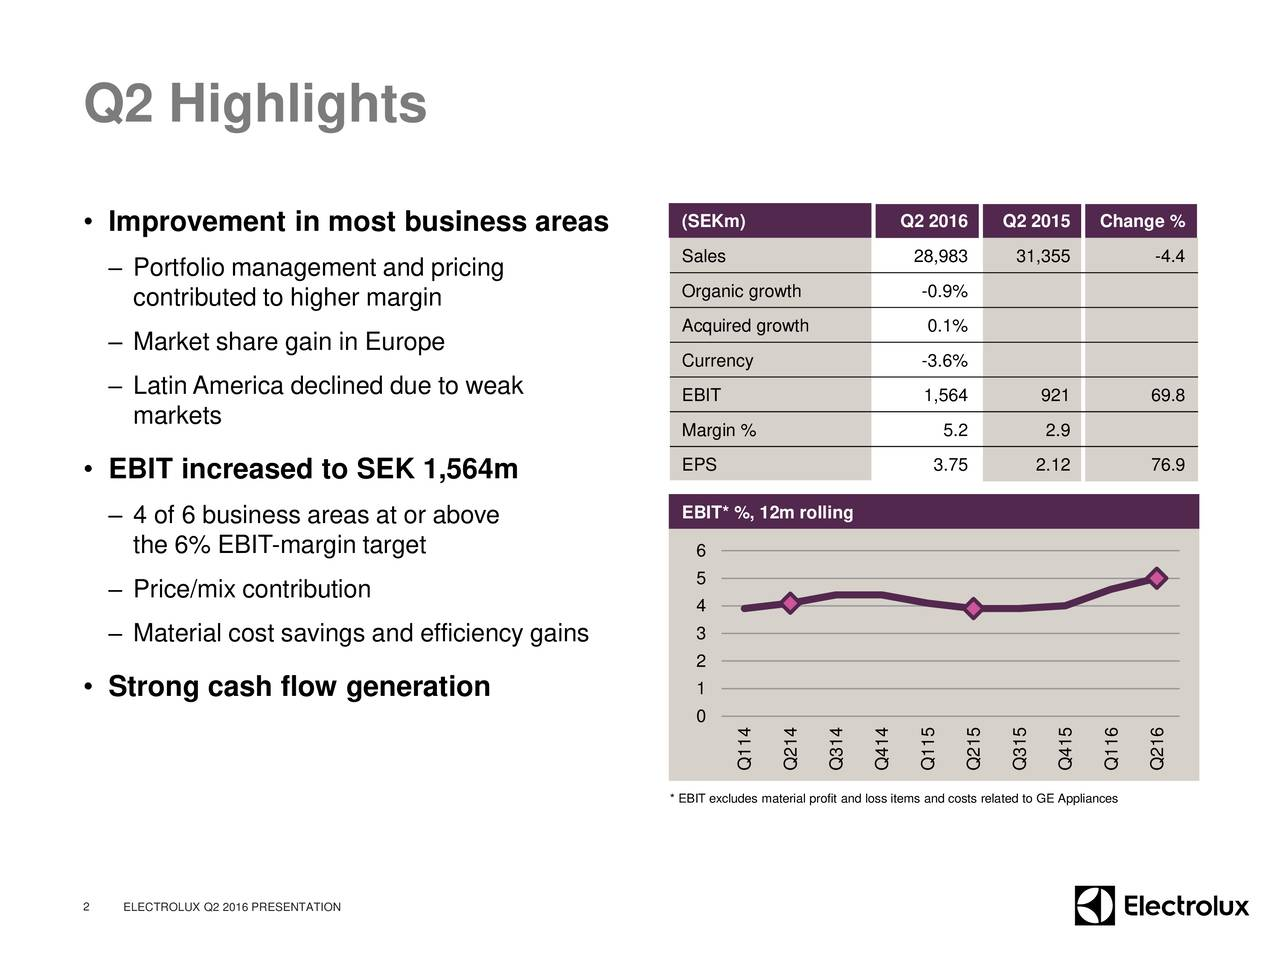 Improvement in most business areas (SEKm) Q2 2016 Q2 2015 Change % Sales 28,983 31,355 -4.4 Portfolio management and pricing contributed to higher margin Organic growth -0.9% Acquired growth 0.1% Market share gain in Europe Currency -3.6% Latin America declined due to weak EBIT 1,564 921 69.8 markets Margin % 5.2 2.9 EBIT increased to SEK 1,564m EPS 3.75 2.12 76.9 4 of 6 business areas at or above EBIT* %, 12m rolling the 6% EBIT-margin target 6 5 Price/mix contribution 4 Material cost savings and efficiency gains 3 2 Strong cash flow generation 1 0 Q114Q214Q314Q414Q115Q215Q315Q415Q116Q216 * EBIT excludes material profit and loss items and costs related to GE Appliances 2 ELECTROLUX Q2 2016 PRESENTATION